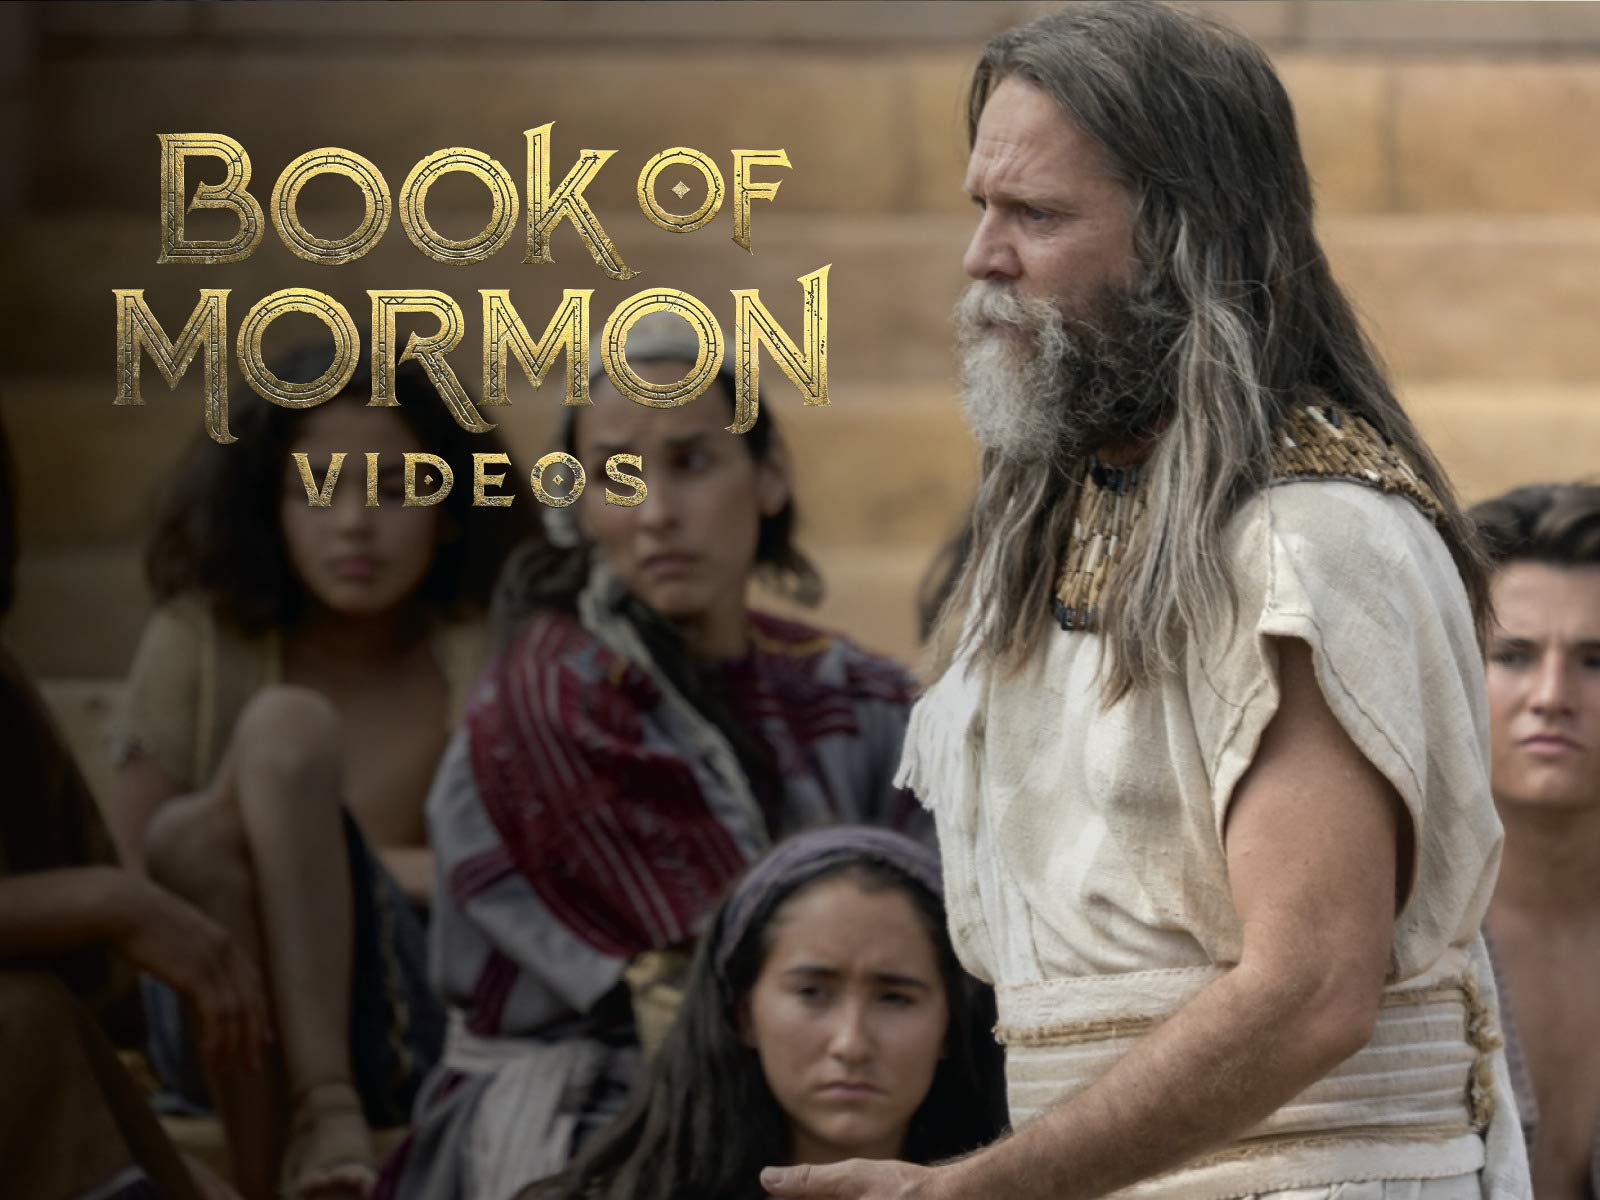 Book of Mormon Videos - Season 2